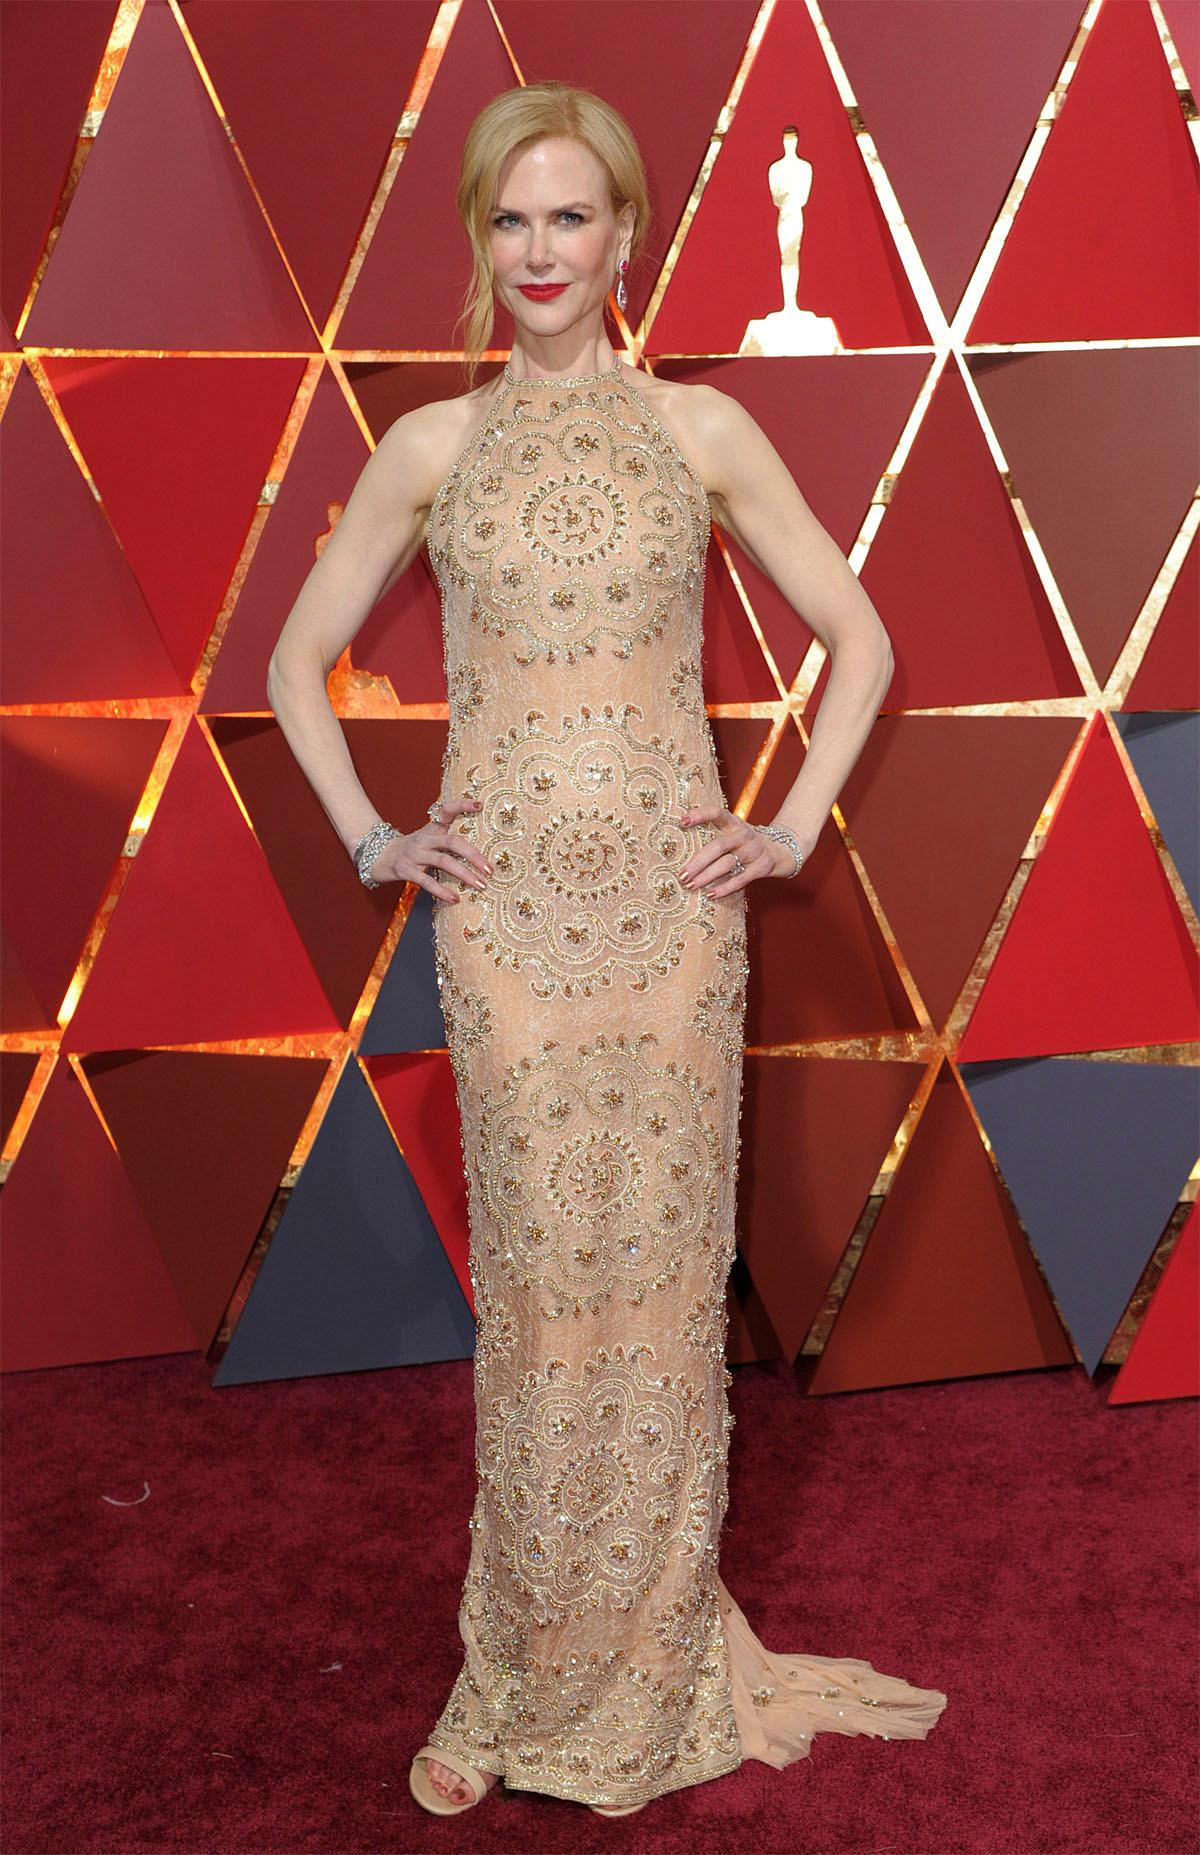 Nicole Kidman arrives at the Oscars on Sunday, Feb. 26, 2017, at the Dolby Theatre in Los Angeles. (Photo by Richard Shotwell/Invision/AP)